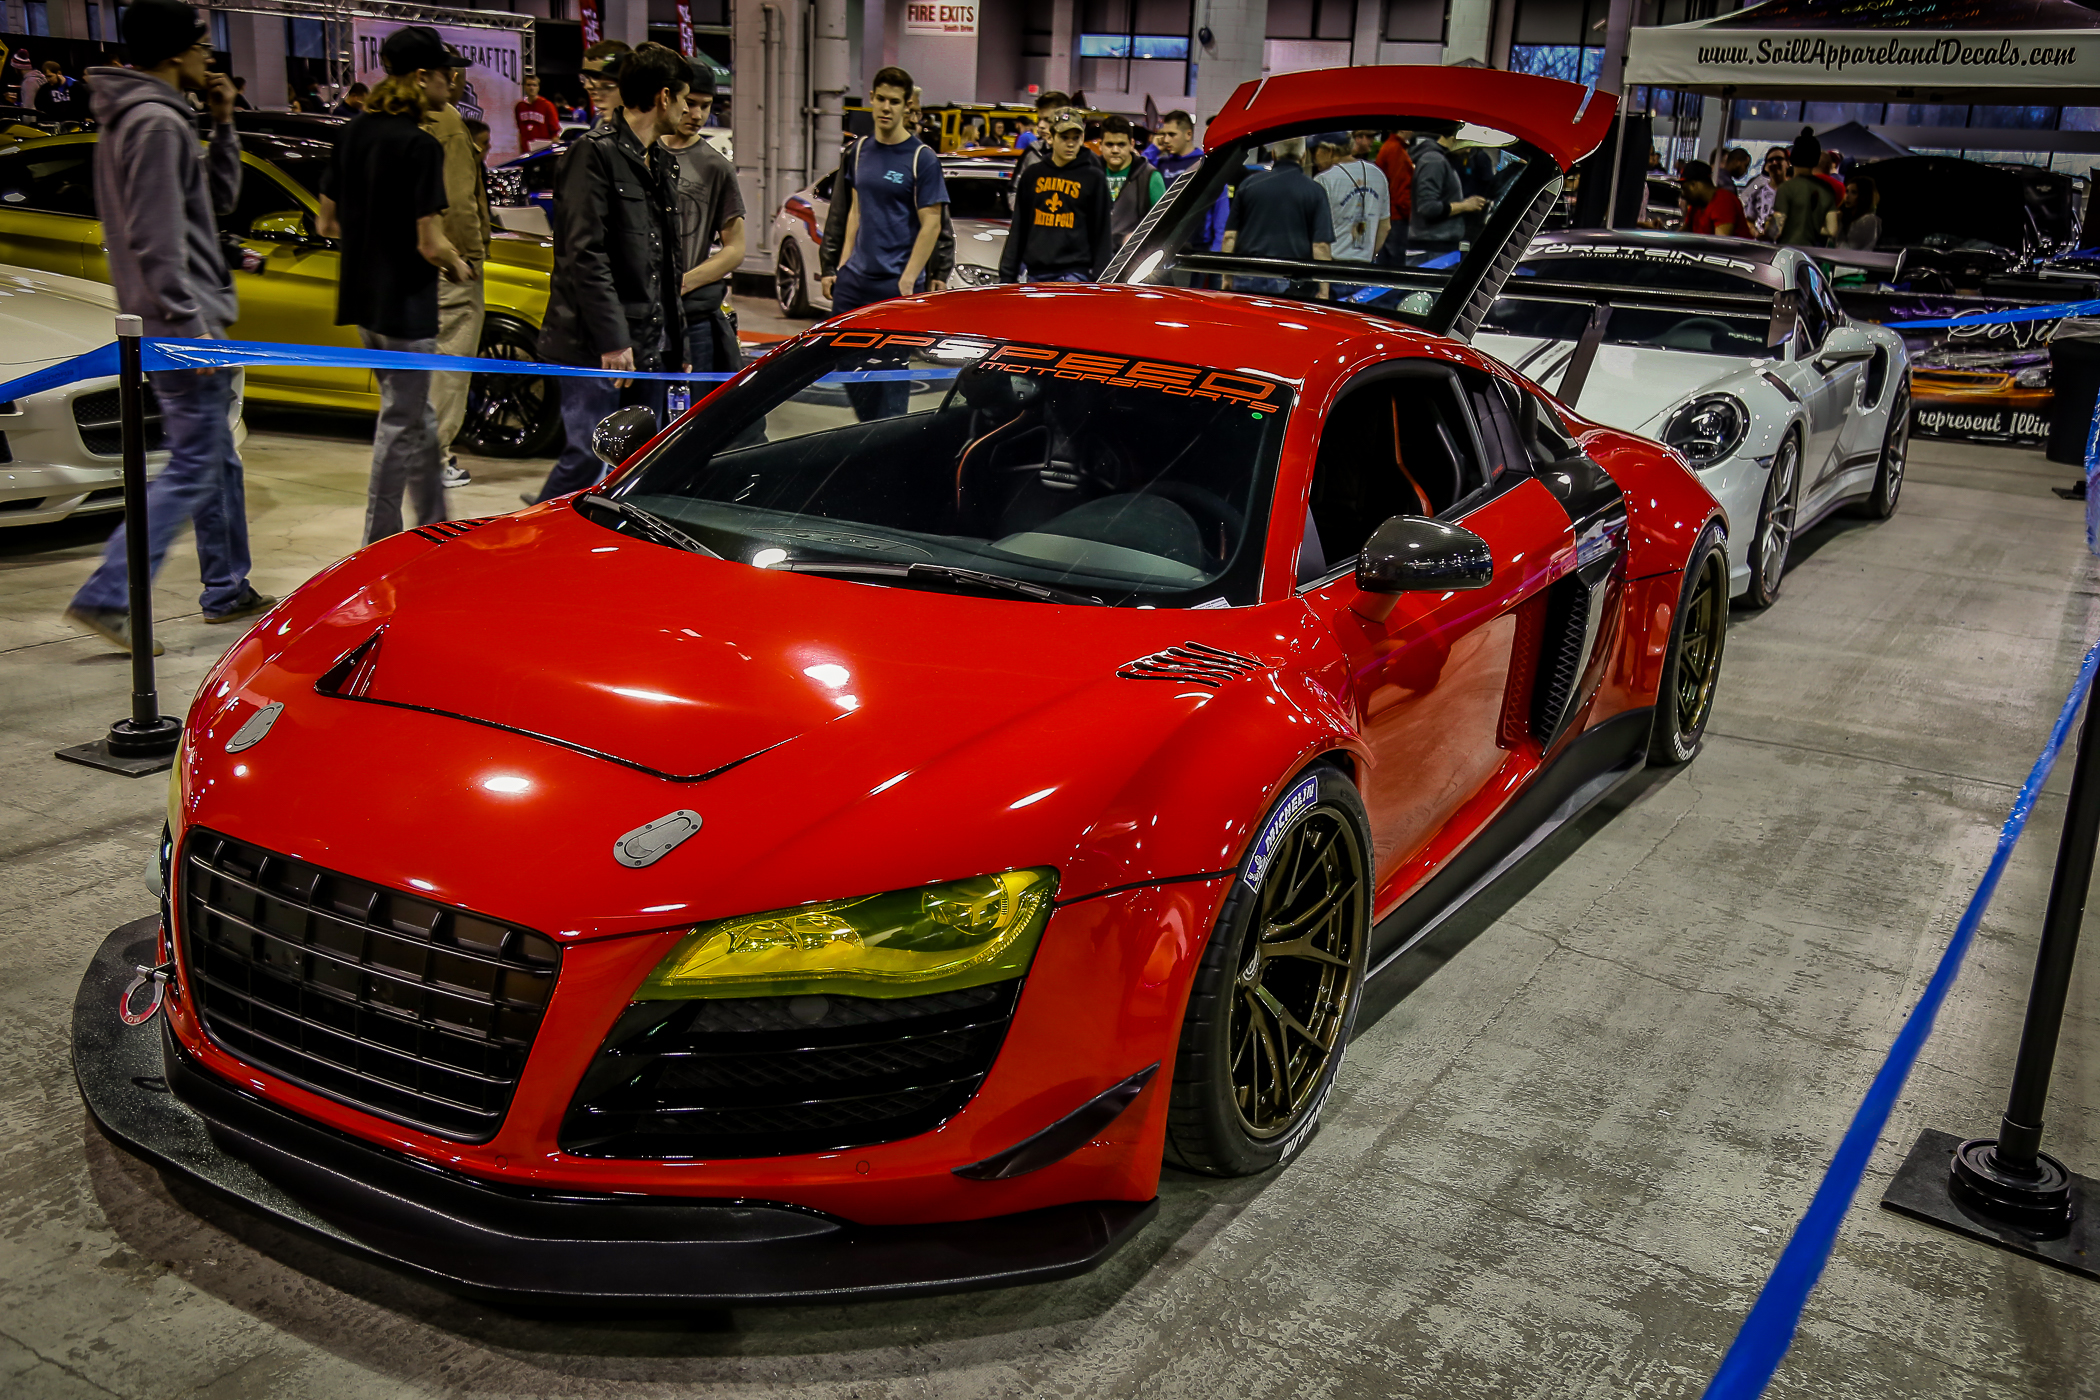 Click on image to see few more vehicles from Tuner Galleria.